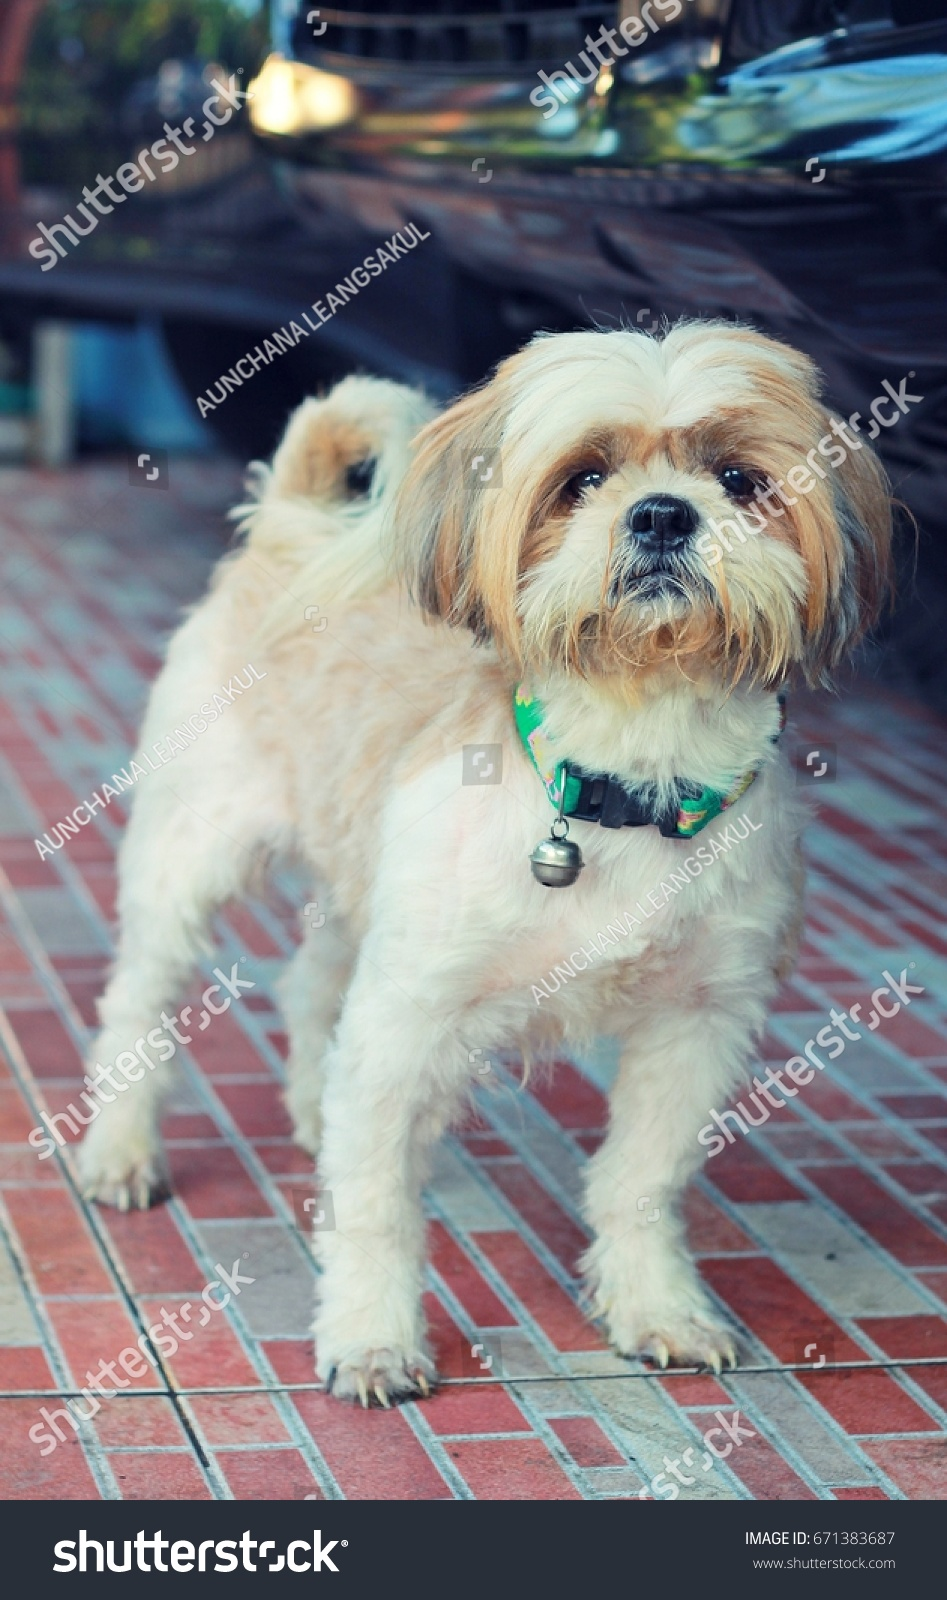 Dog Shih Tzu Short Hair White Stock Photo Edit Now 671383687